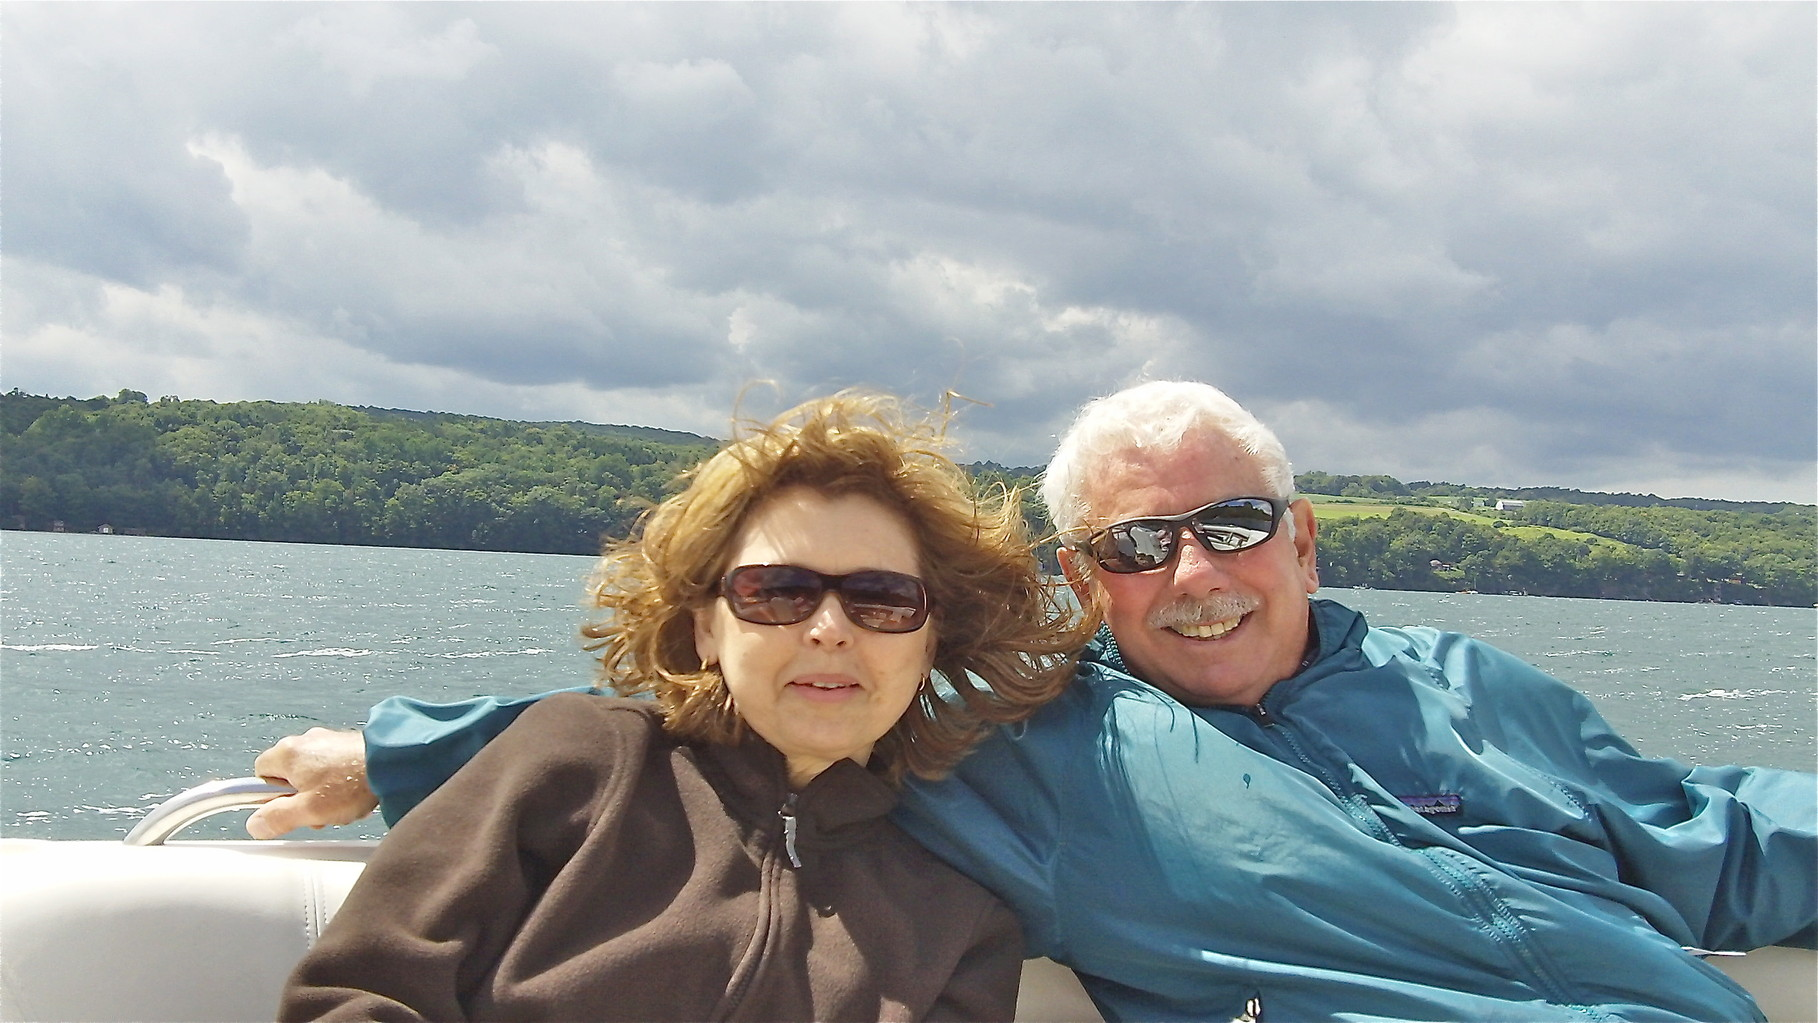 Pictures from 2014-15  Barbara & Don, Skaneateles Lake, August 14, 2014